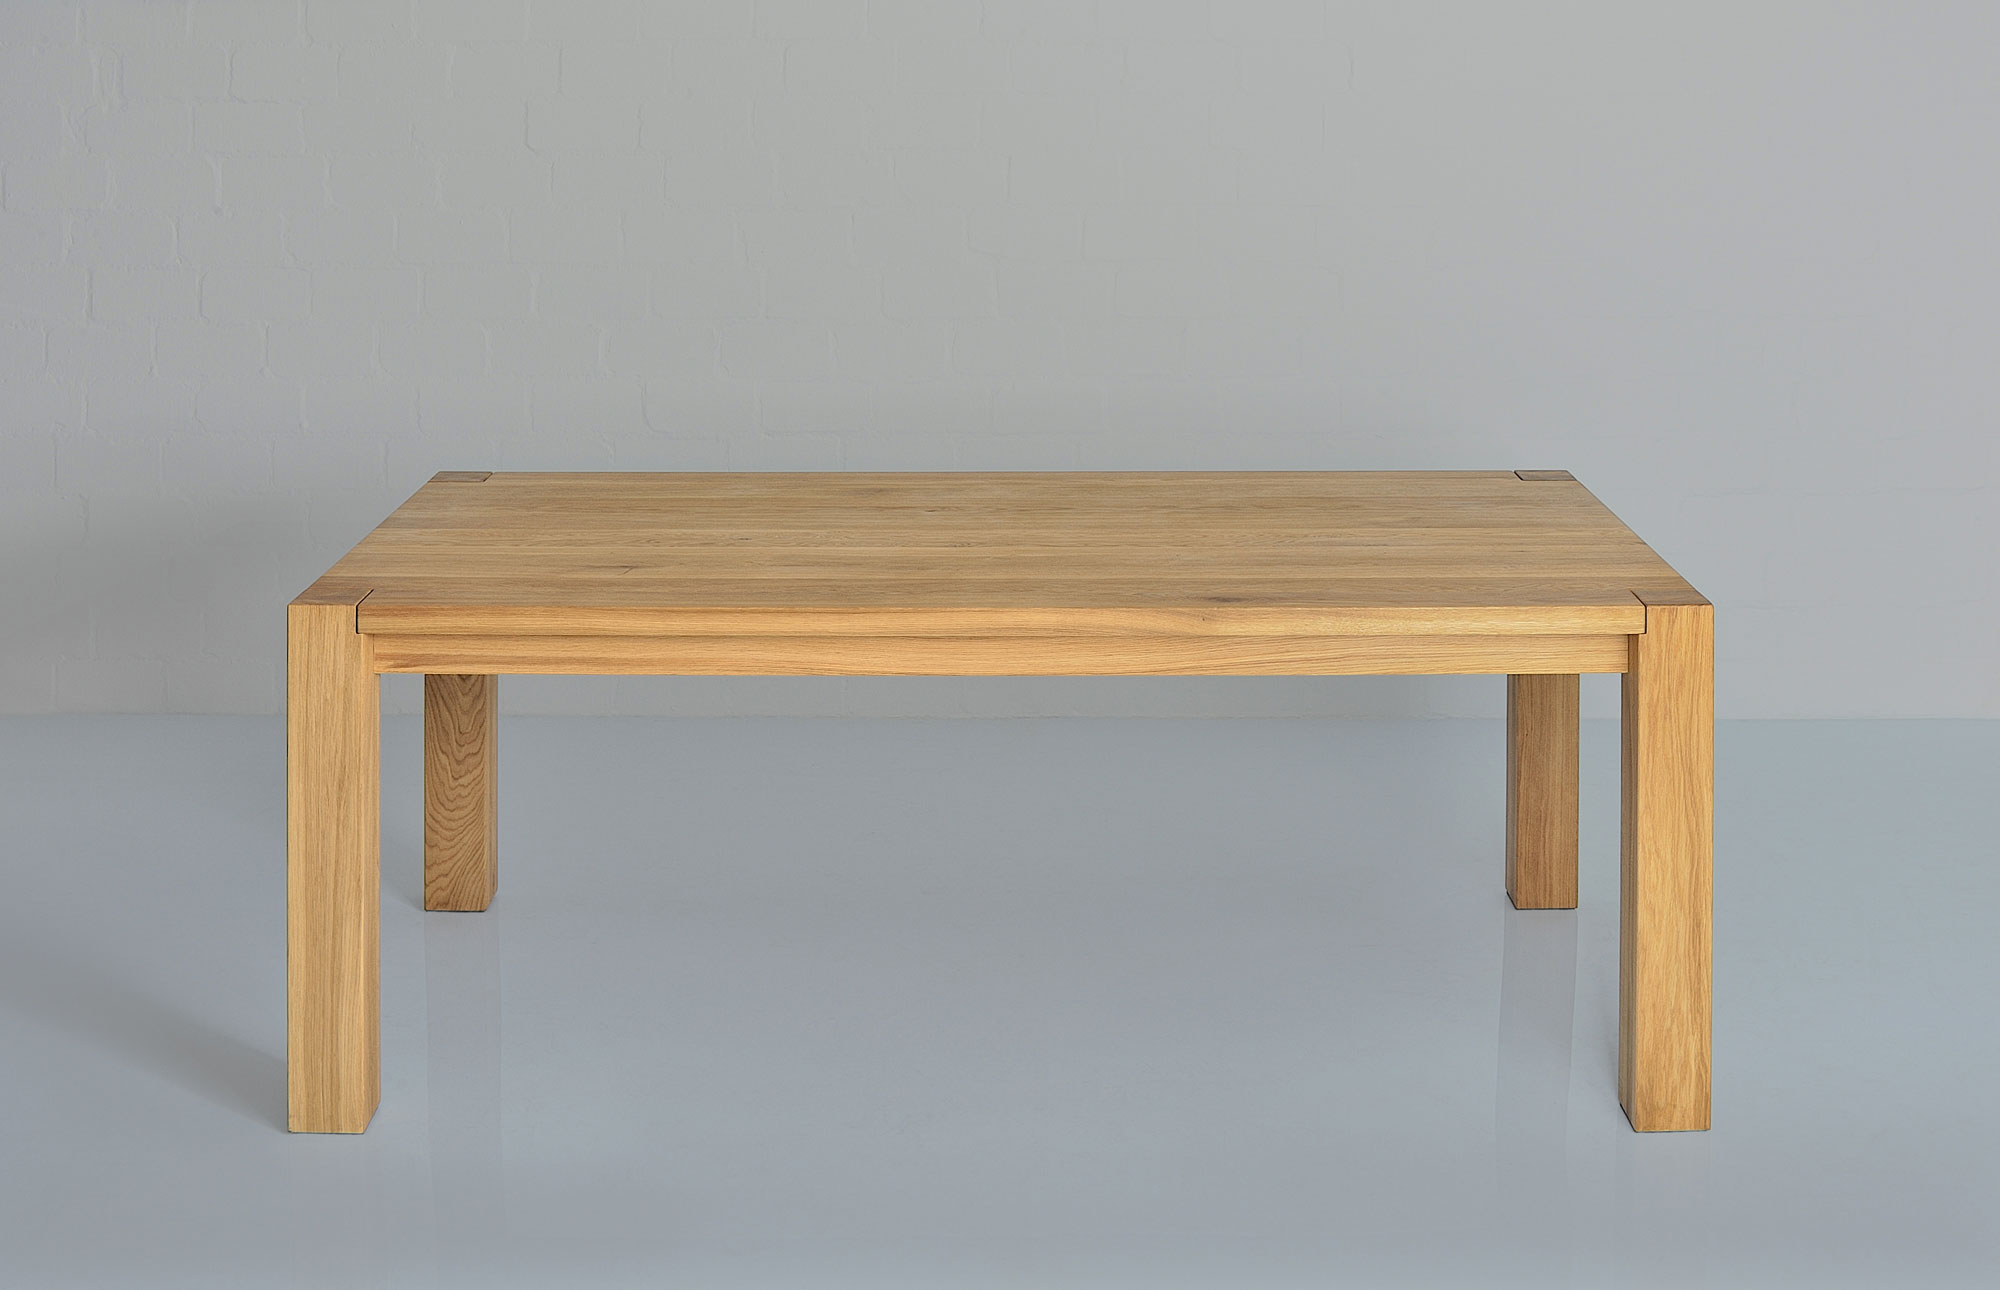 Rustic Oak Table TAURUS 4 B11X11 1112 custom made in solid wood by vitamin design